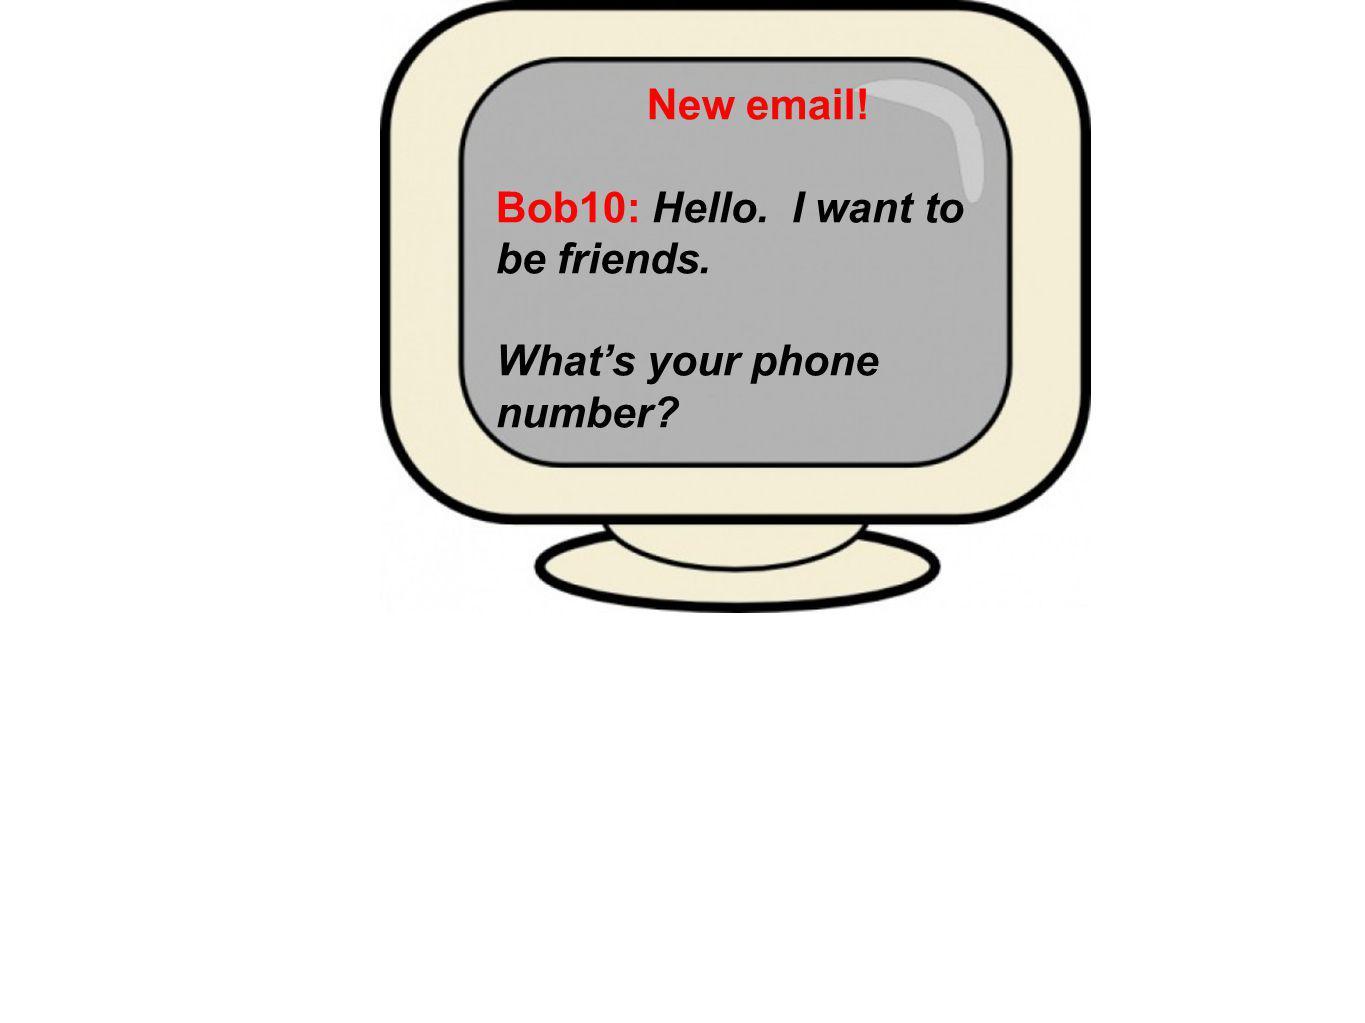 Bob10: Hello. I want to be friends. Whats your phone number